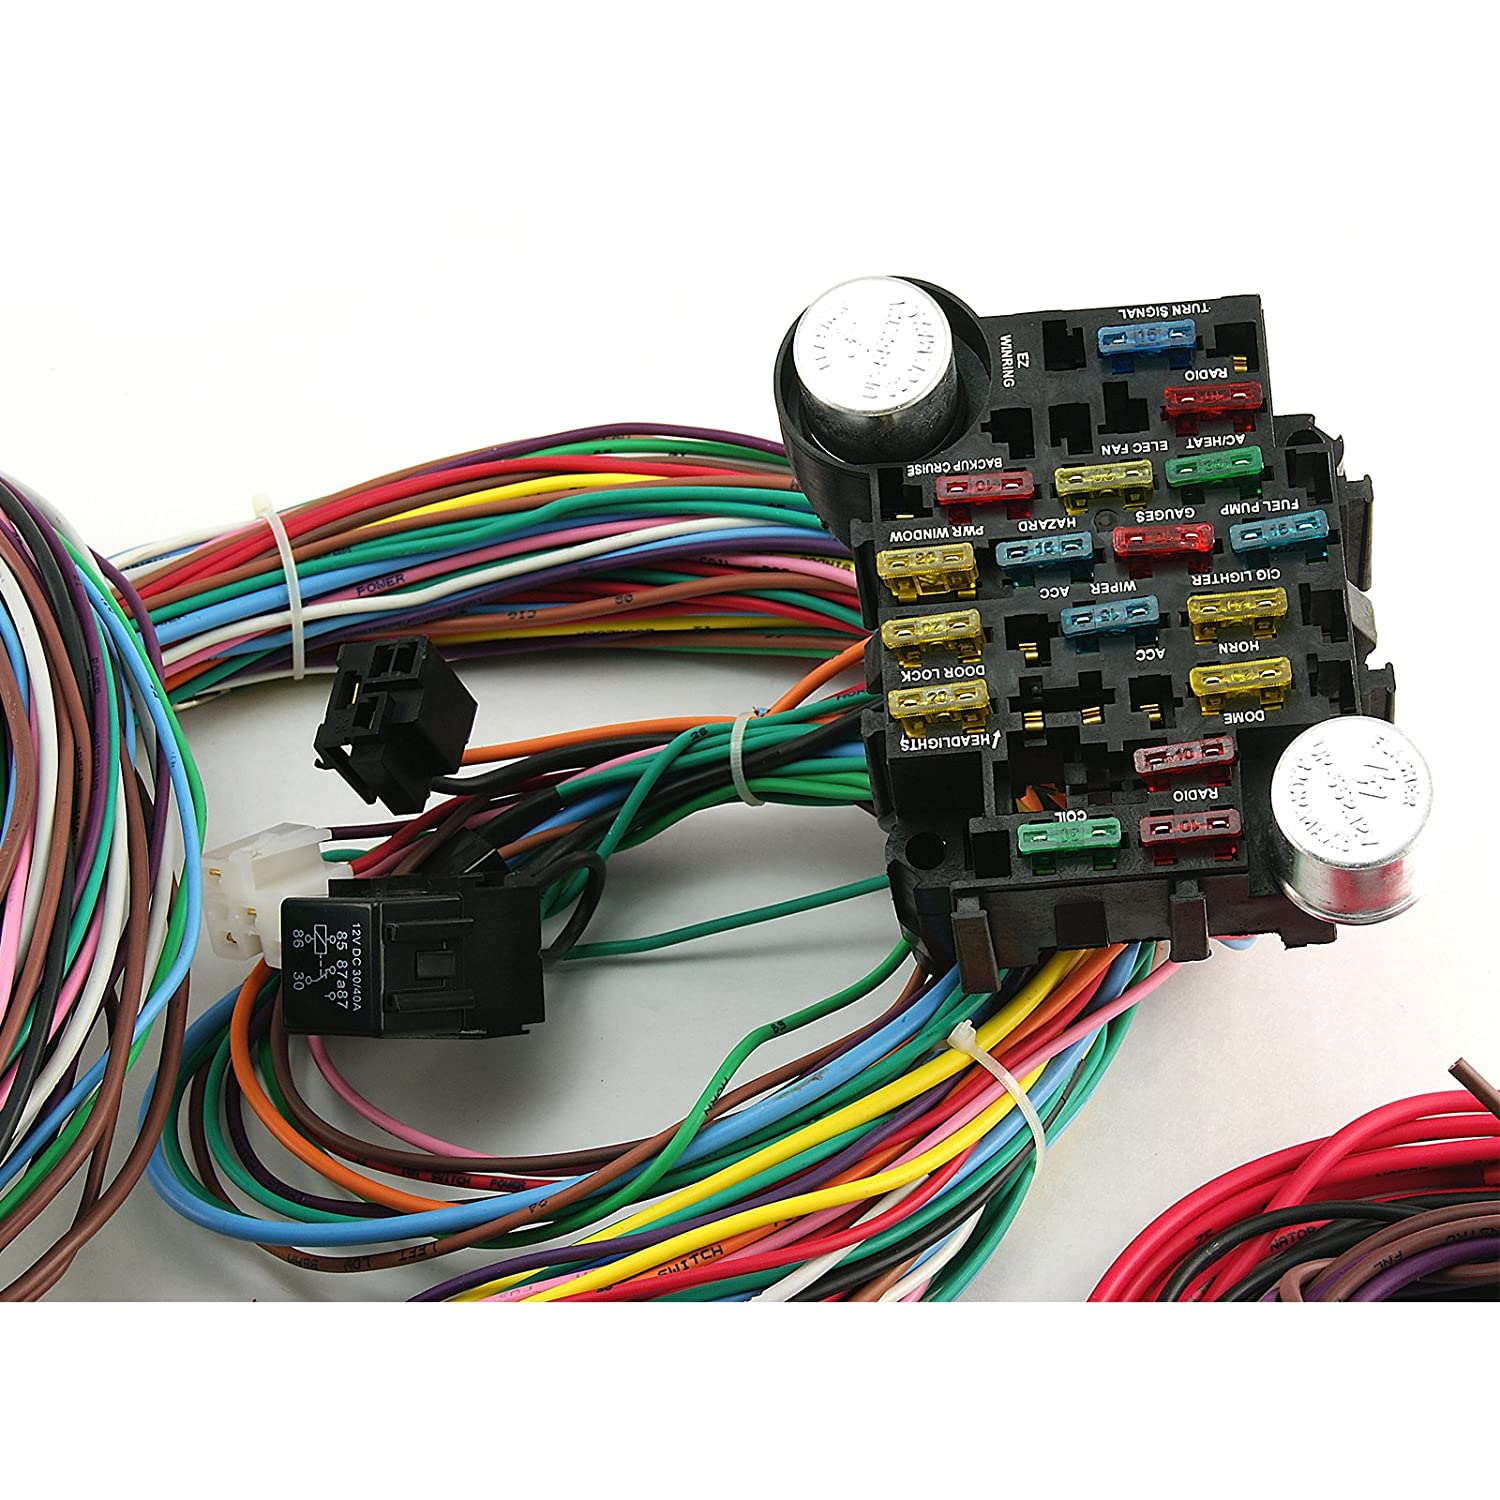 Pro Comp Wiring Harness Diagram Blog Diagrams Dodge Amazon Com Speedmaster Pce368 1002 Harnesses